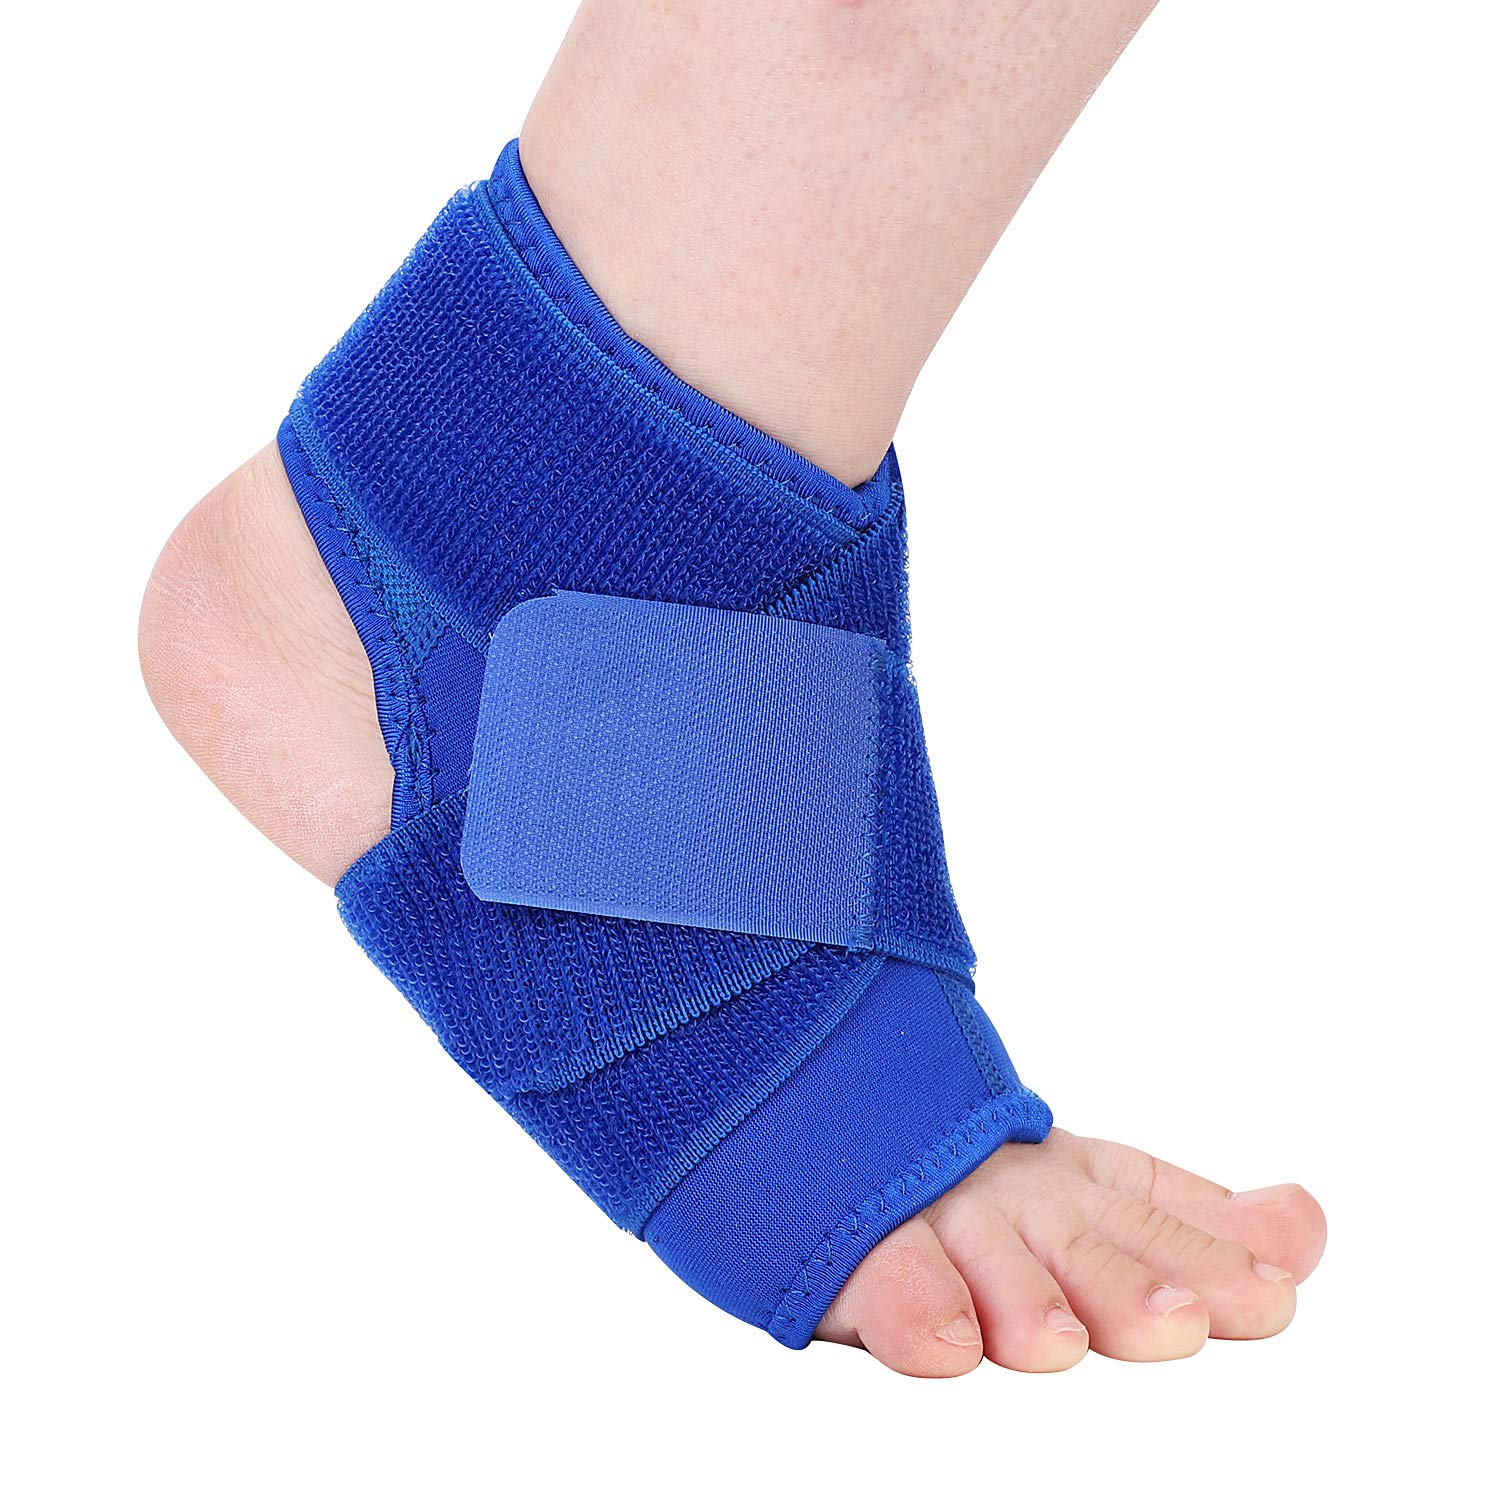 Ankle Support Brace Compression Ankle Strap Immobilization Foot Wrap Support for Joint Pain Sprain Arthritis Pain Relief ,Tendon Injury Recovery Re-injury Protection for Fitness Basketball Men Women